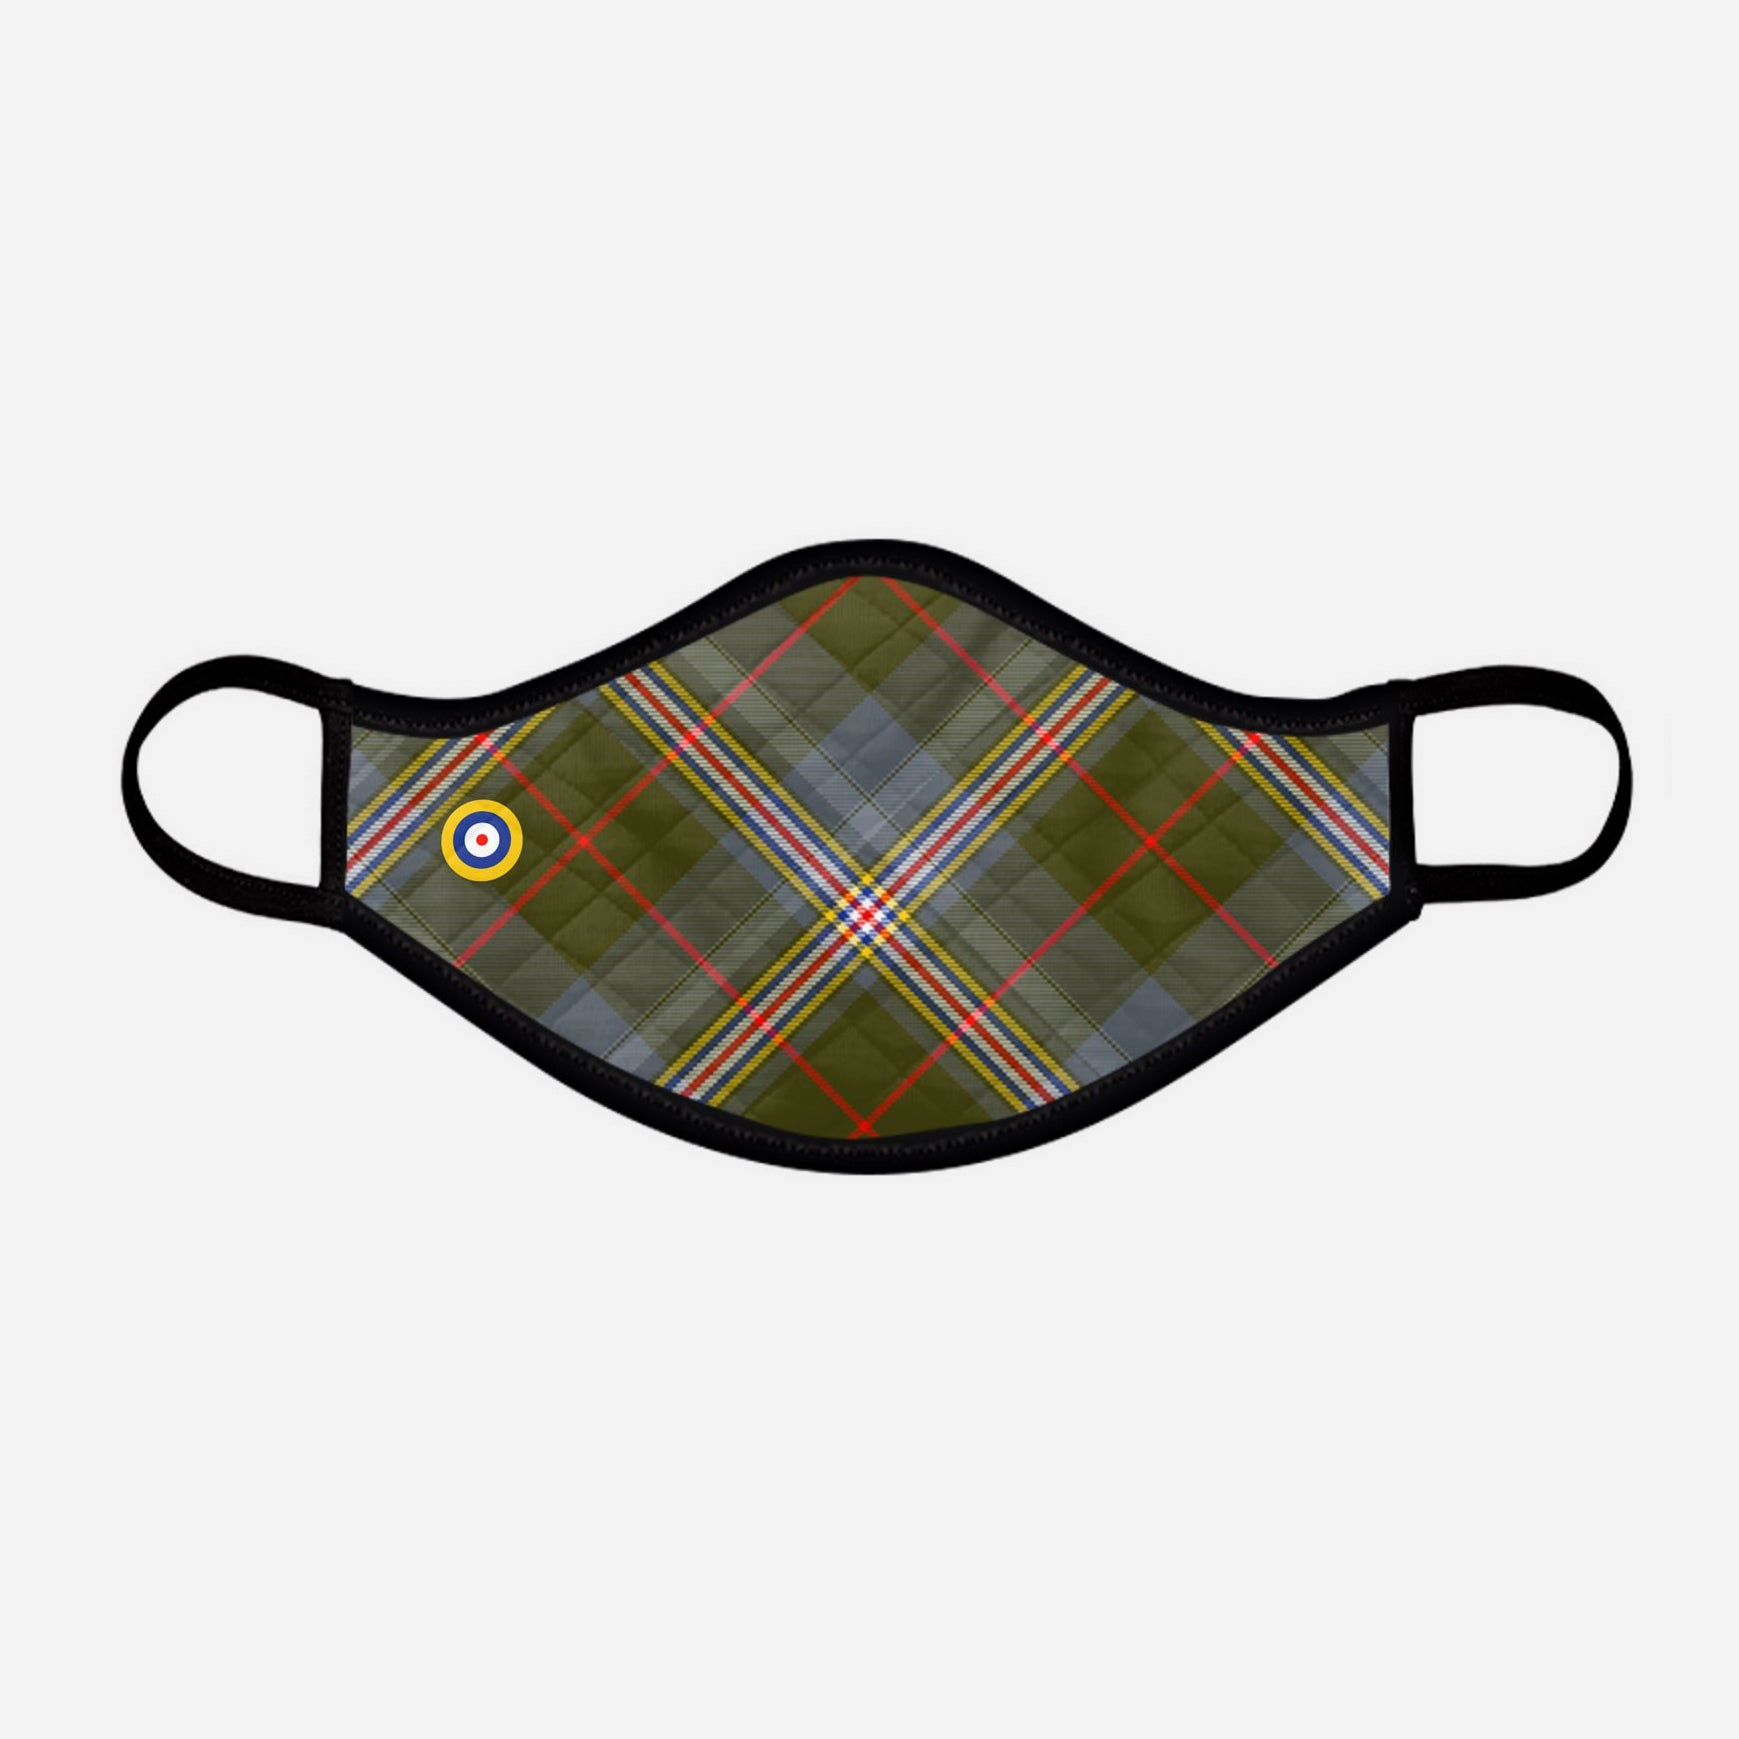 Red Lichtie Spitfire EP121 Montrose Air Station Heritage Centre Tartan custom printed face mask - Medium with badge - by the Steven Patrick Sim Tartan Artisan - Stevie Tartan Guy Arbroath, Scotland with Nicola Sturgeon - mixed pack of 4 or 2